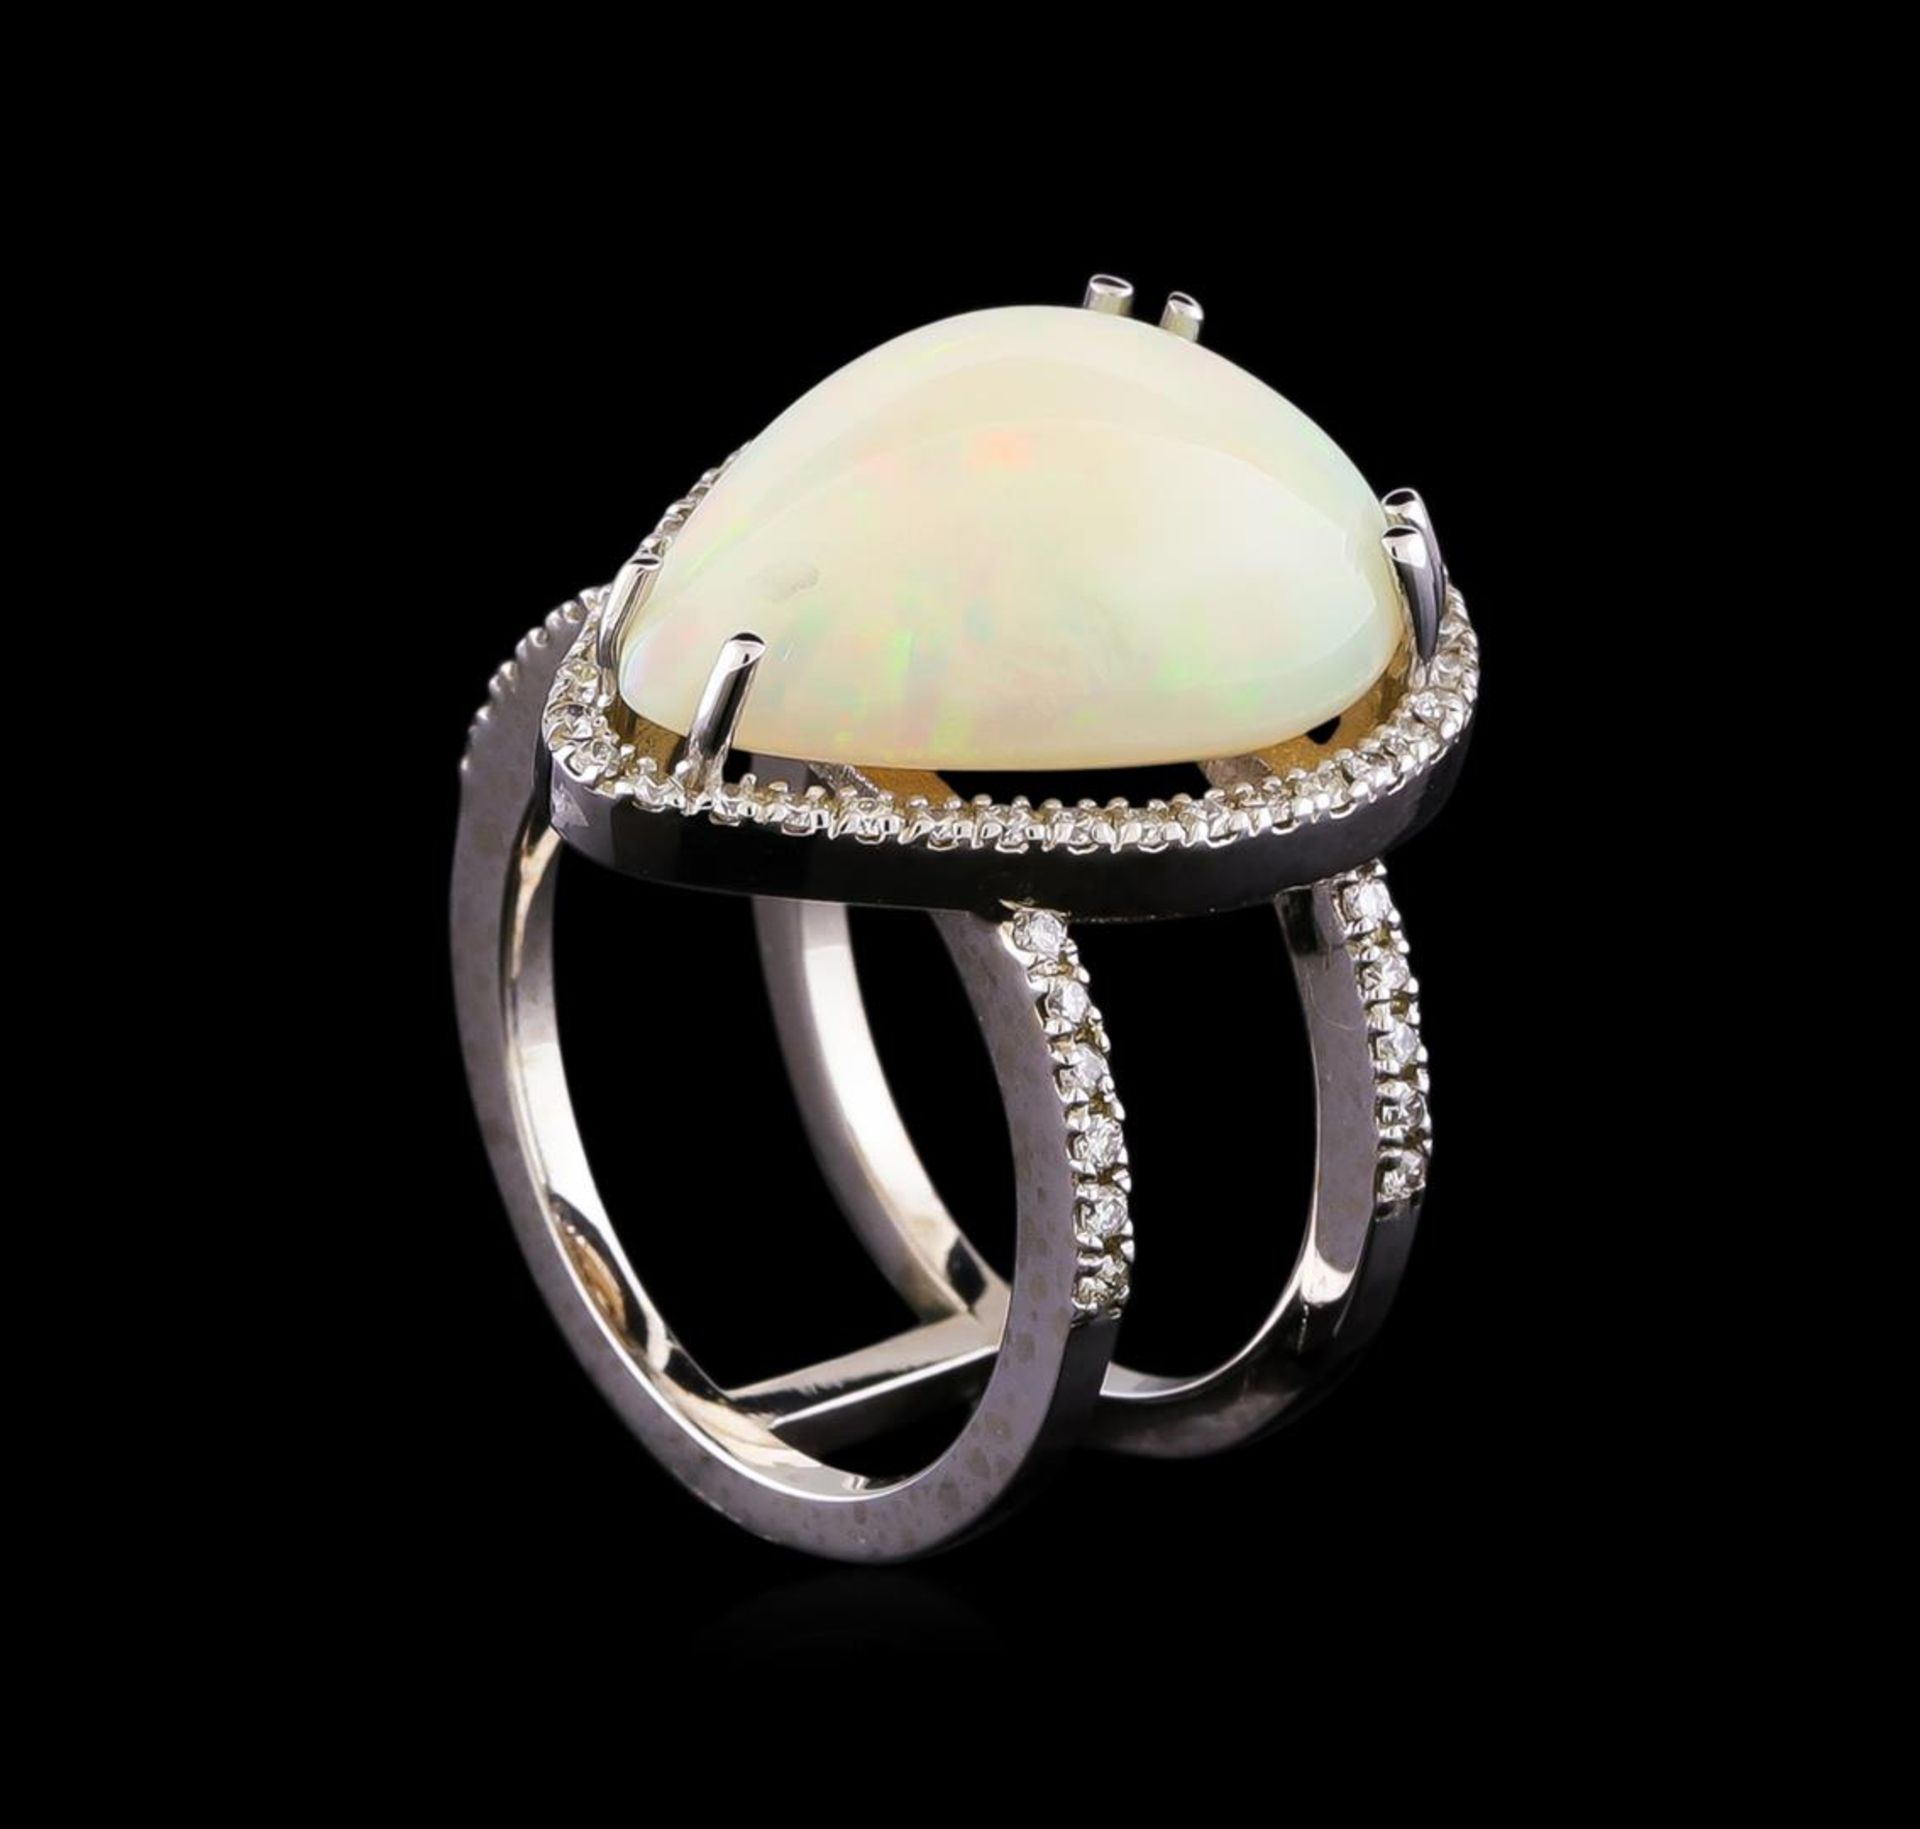 9.70 ctw Opal and Diamond Ring - 14KT White Gold - Image 4 of 5